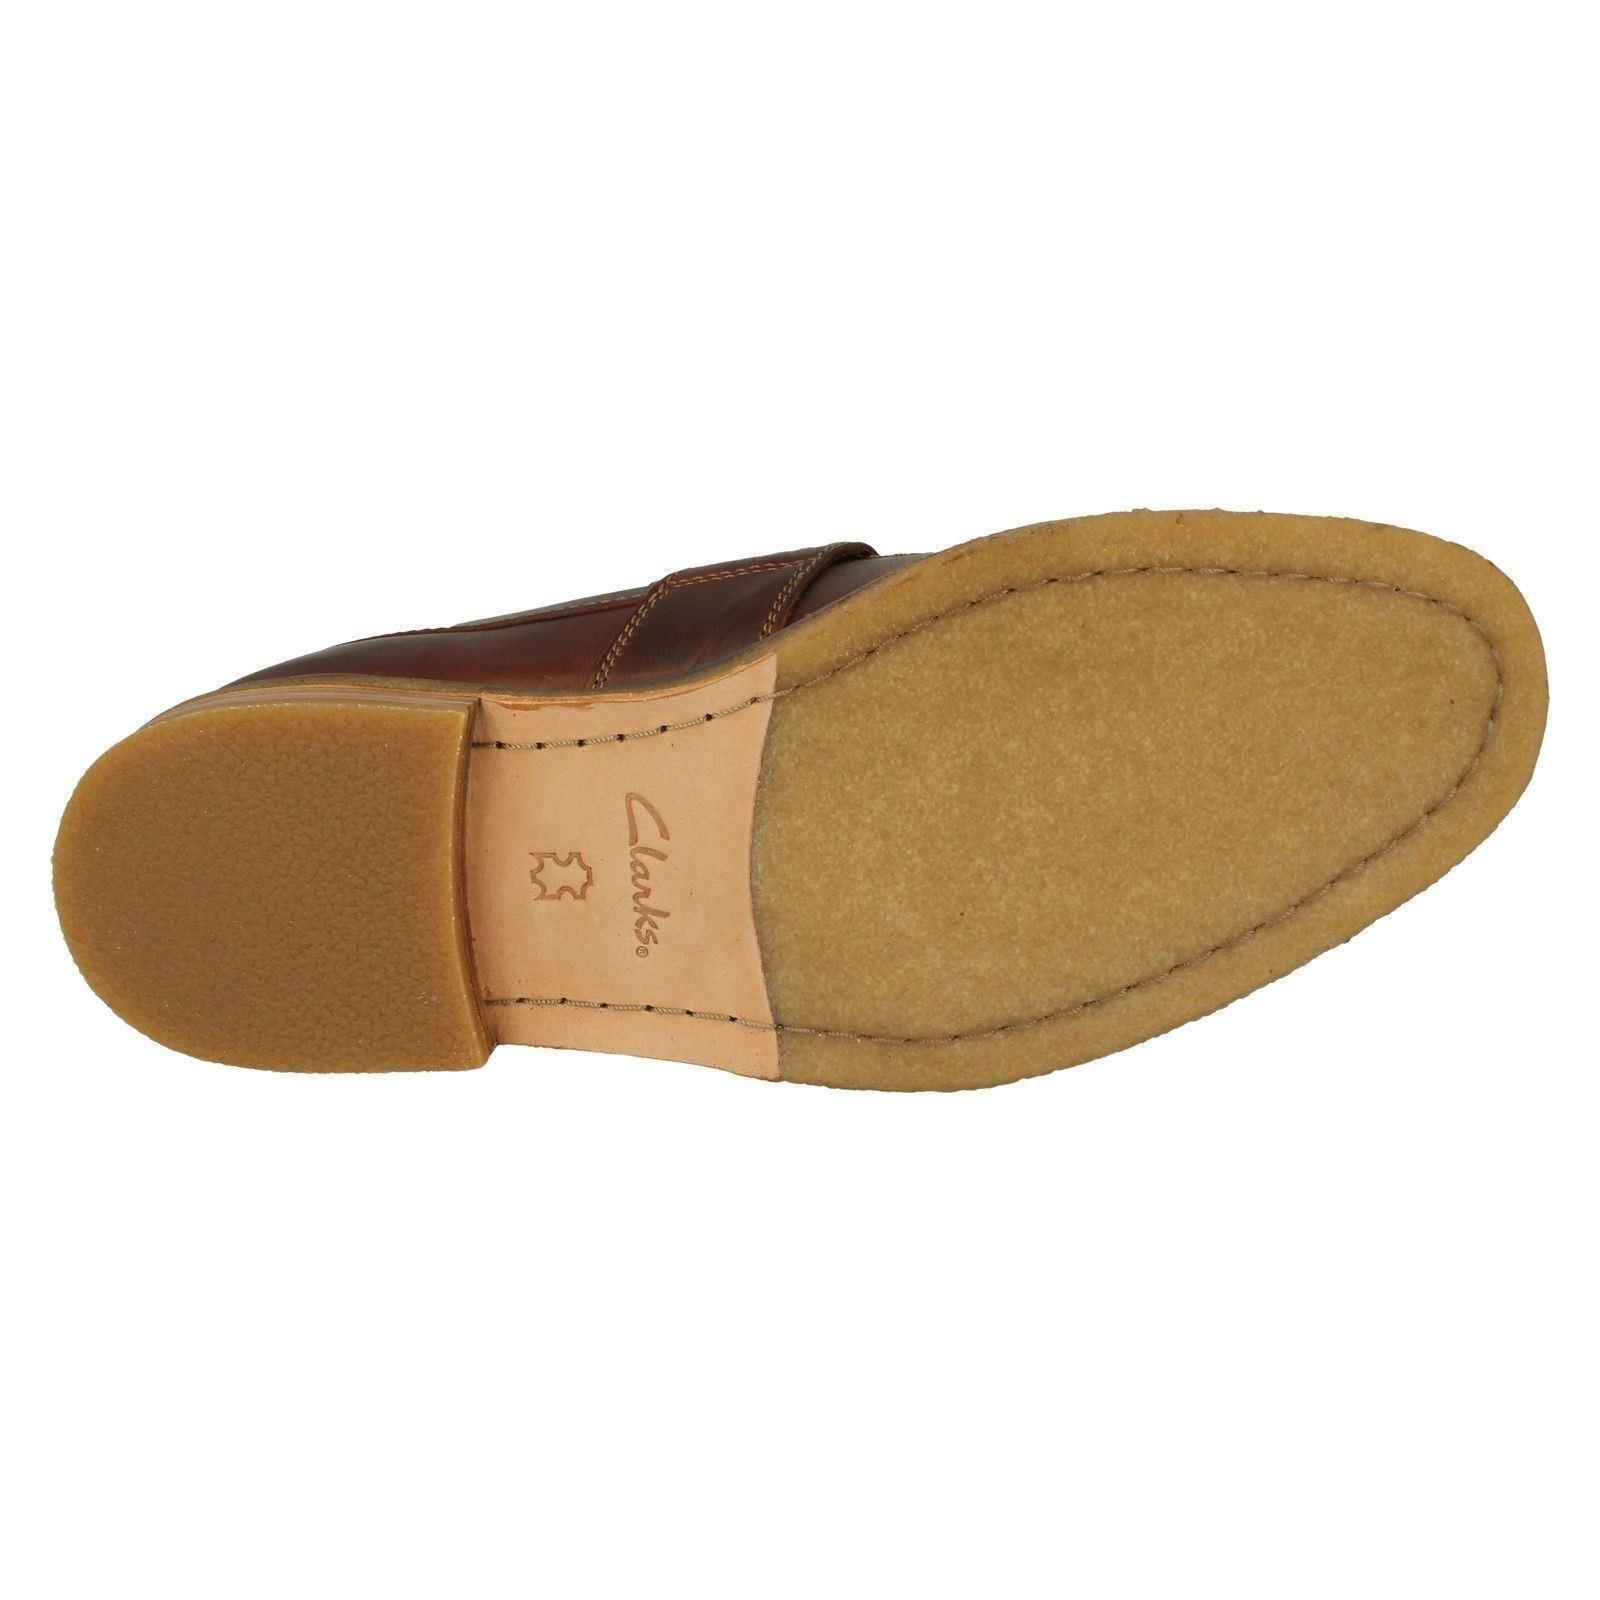 Ladies Clarks Slip On Loafers Casual Shoes Clarkdale Flow